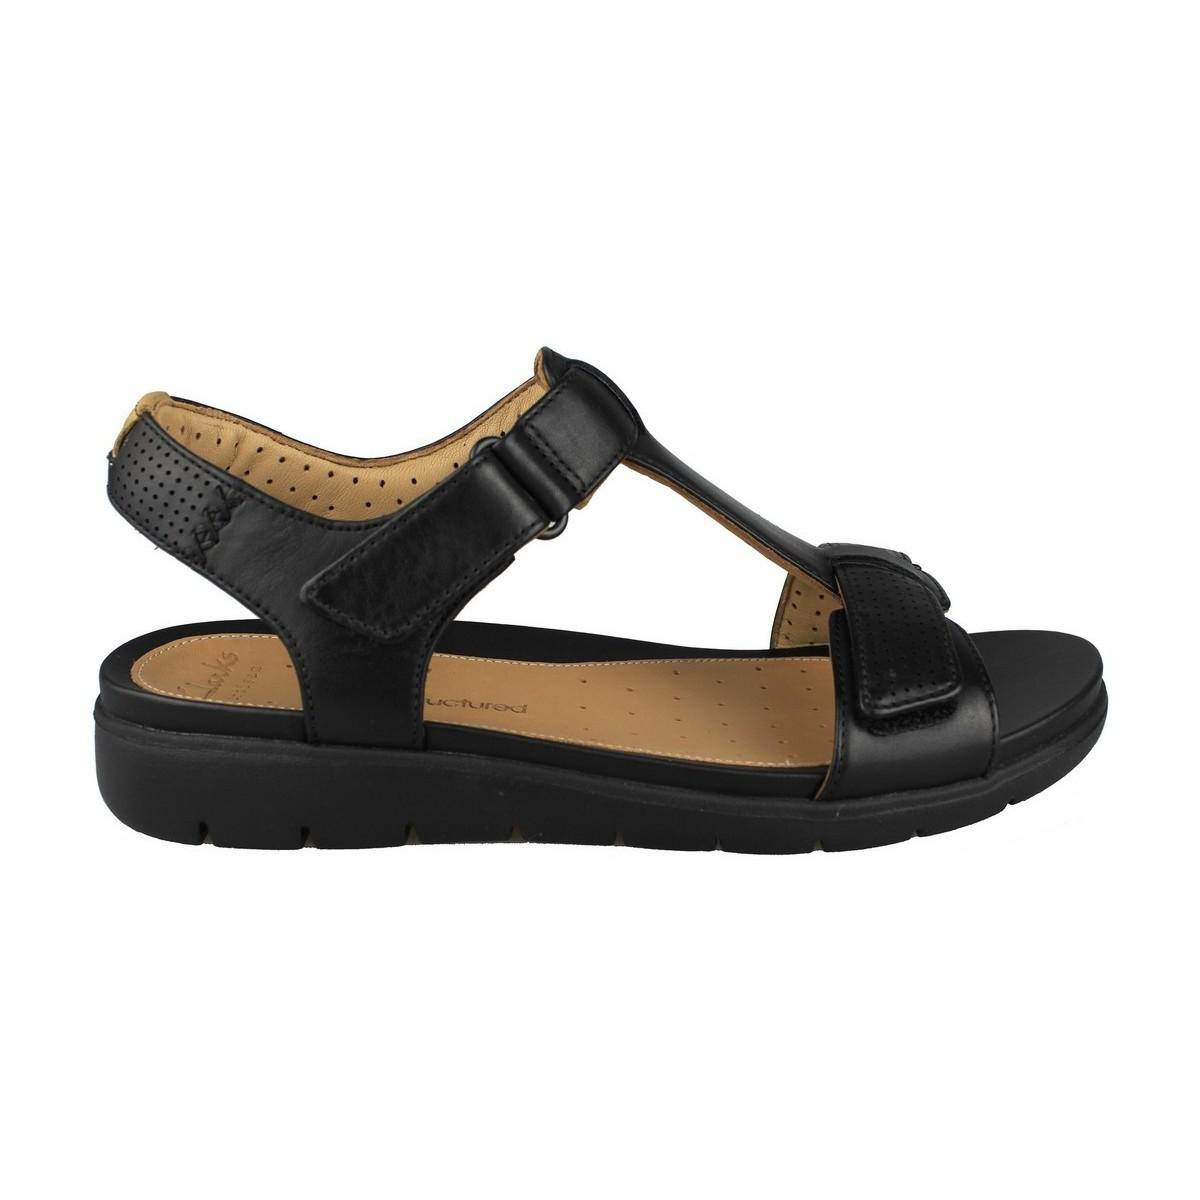 2a7b87f1d69 Clarks Sandals Unstructured A Haywood Women s Sandals In Black in ...